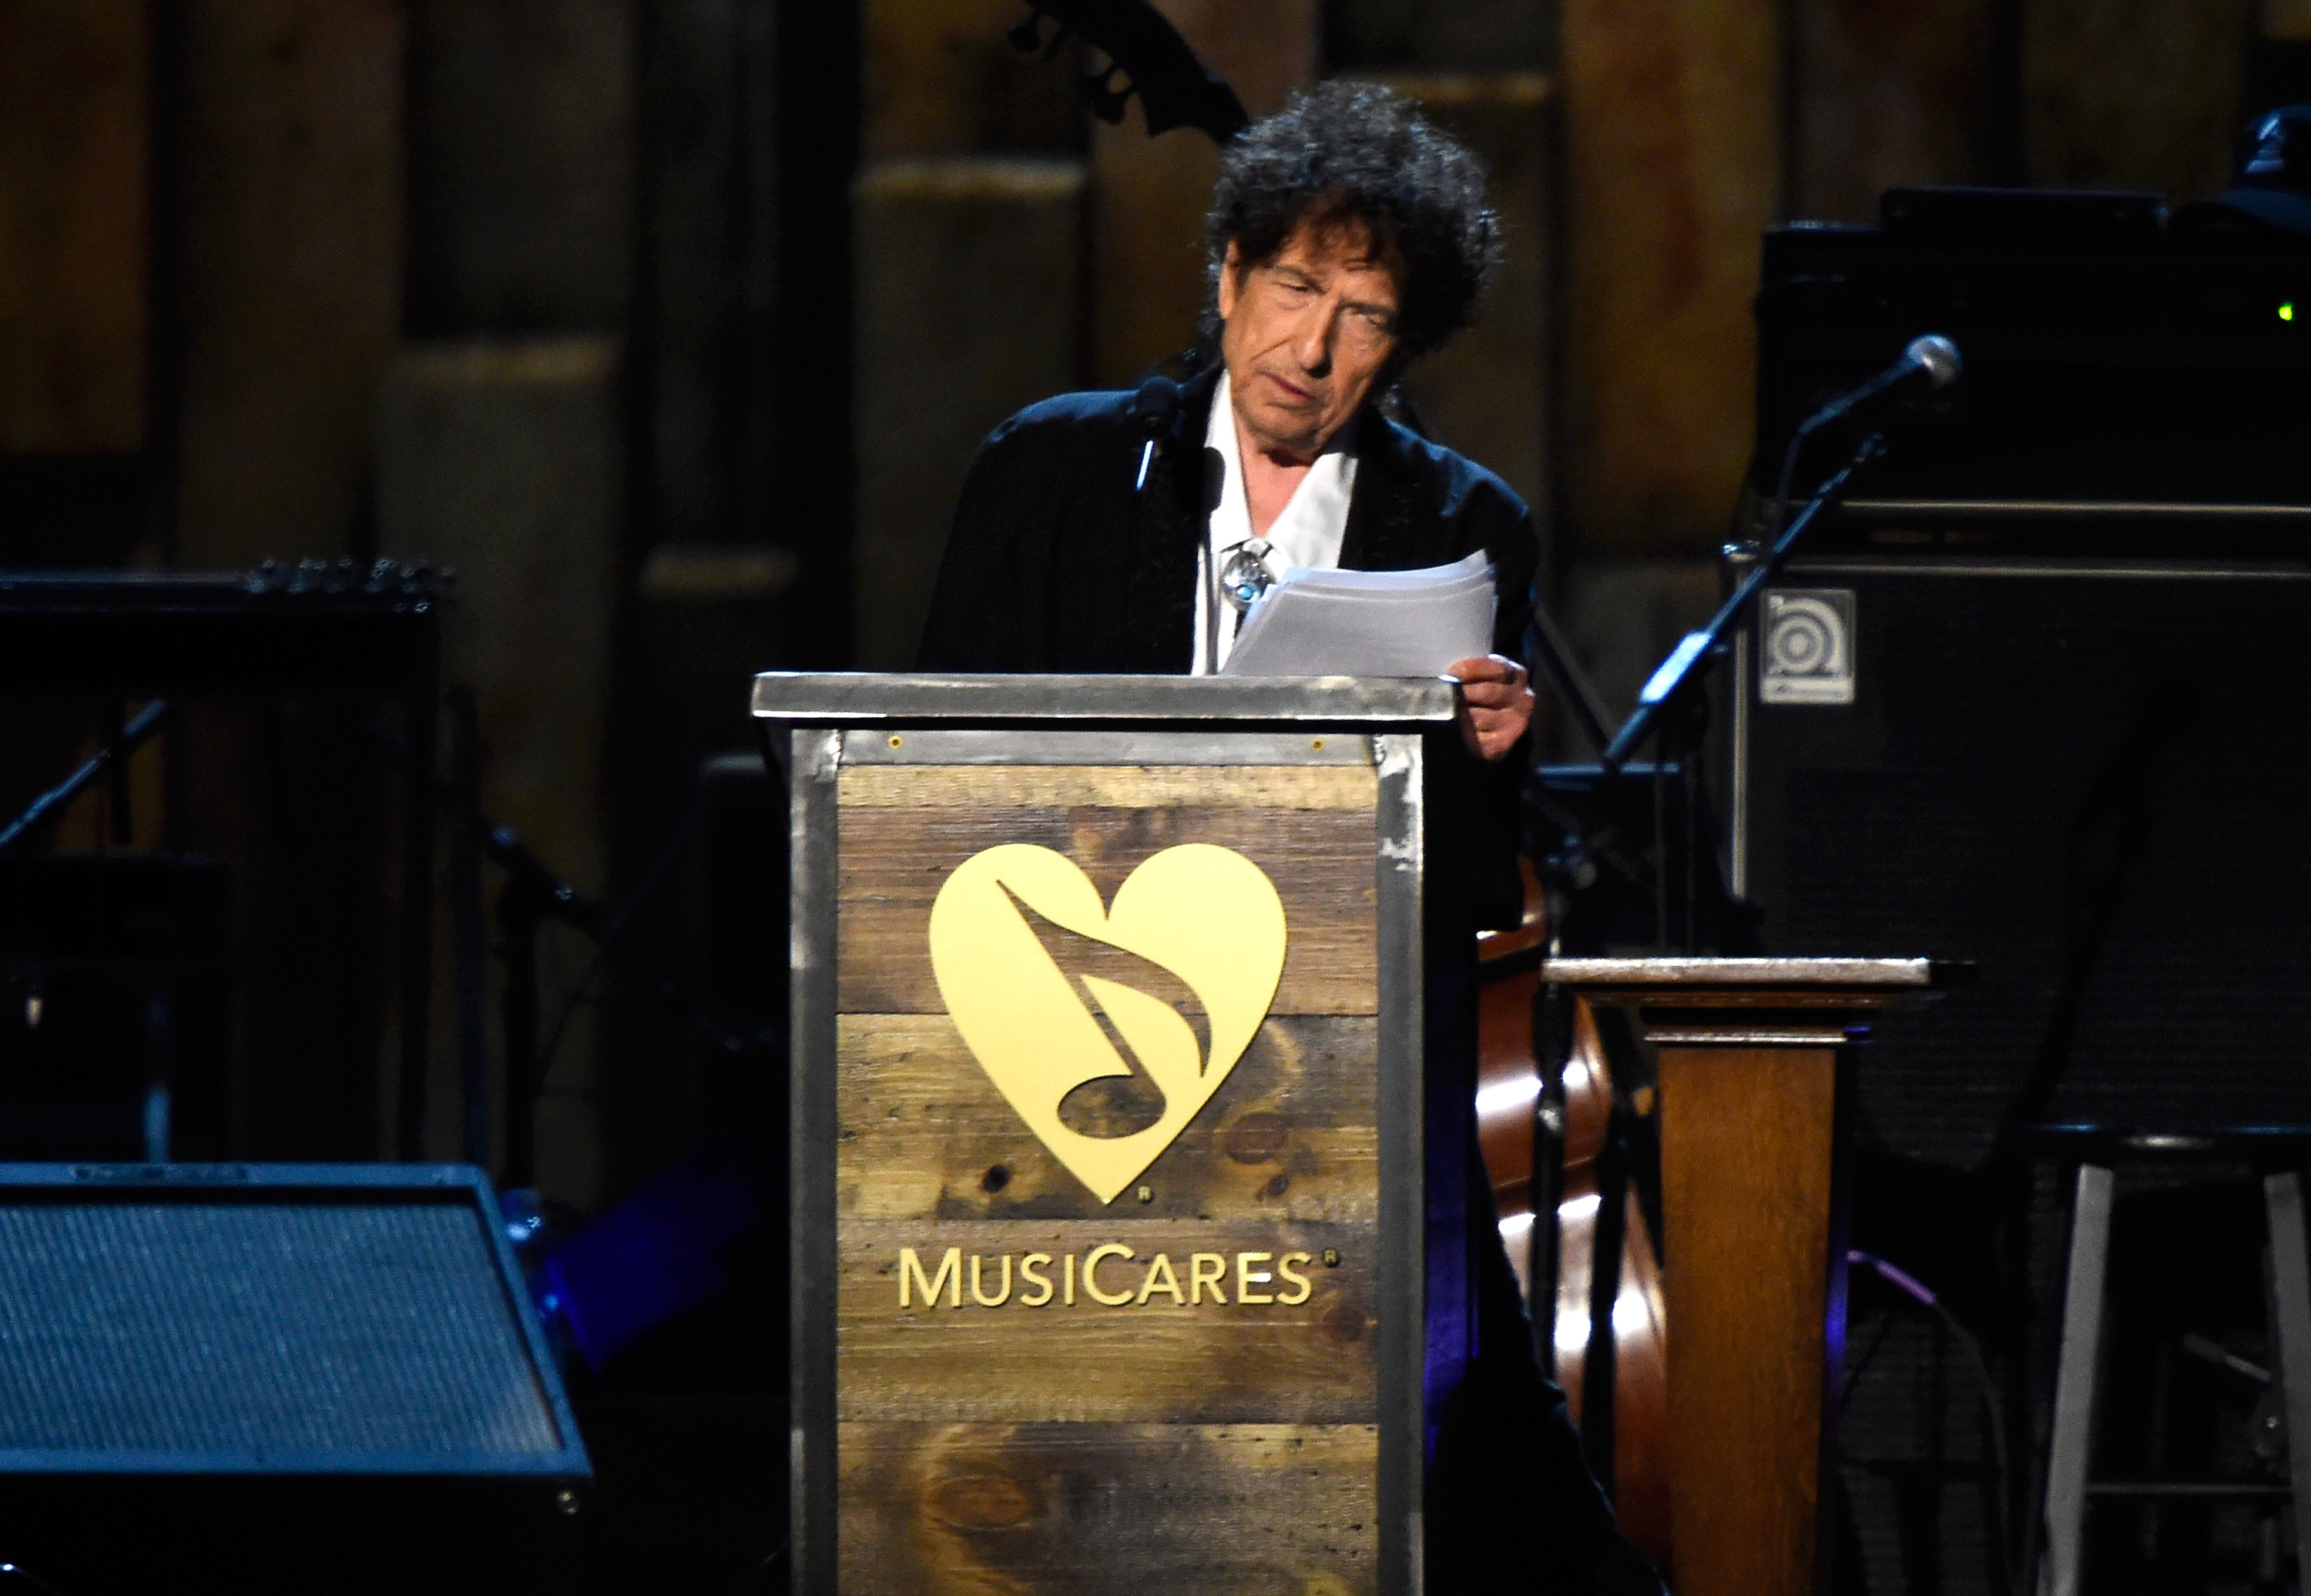 Bob Dylan Downplays Merle Haggard Diss, Praises Springsteen, Maintains That Steely Dan Is Not Rock In MusiCares Postmortem